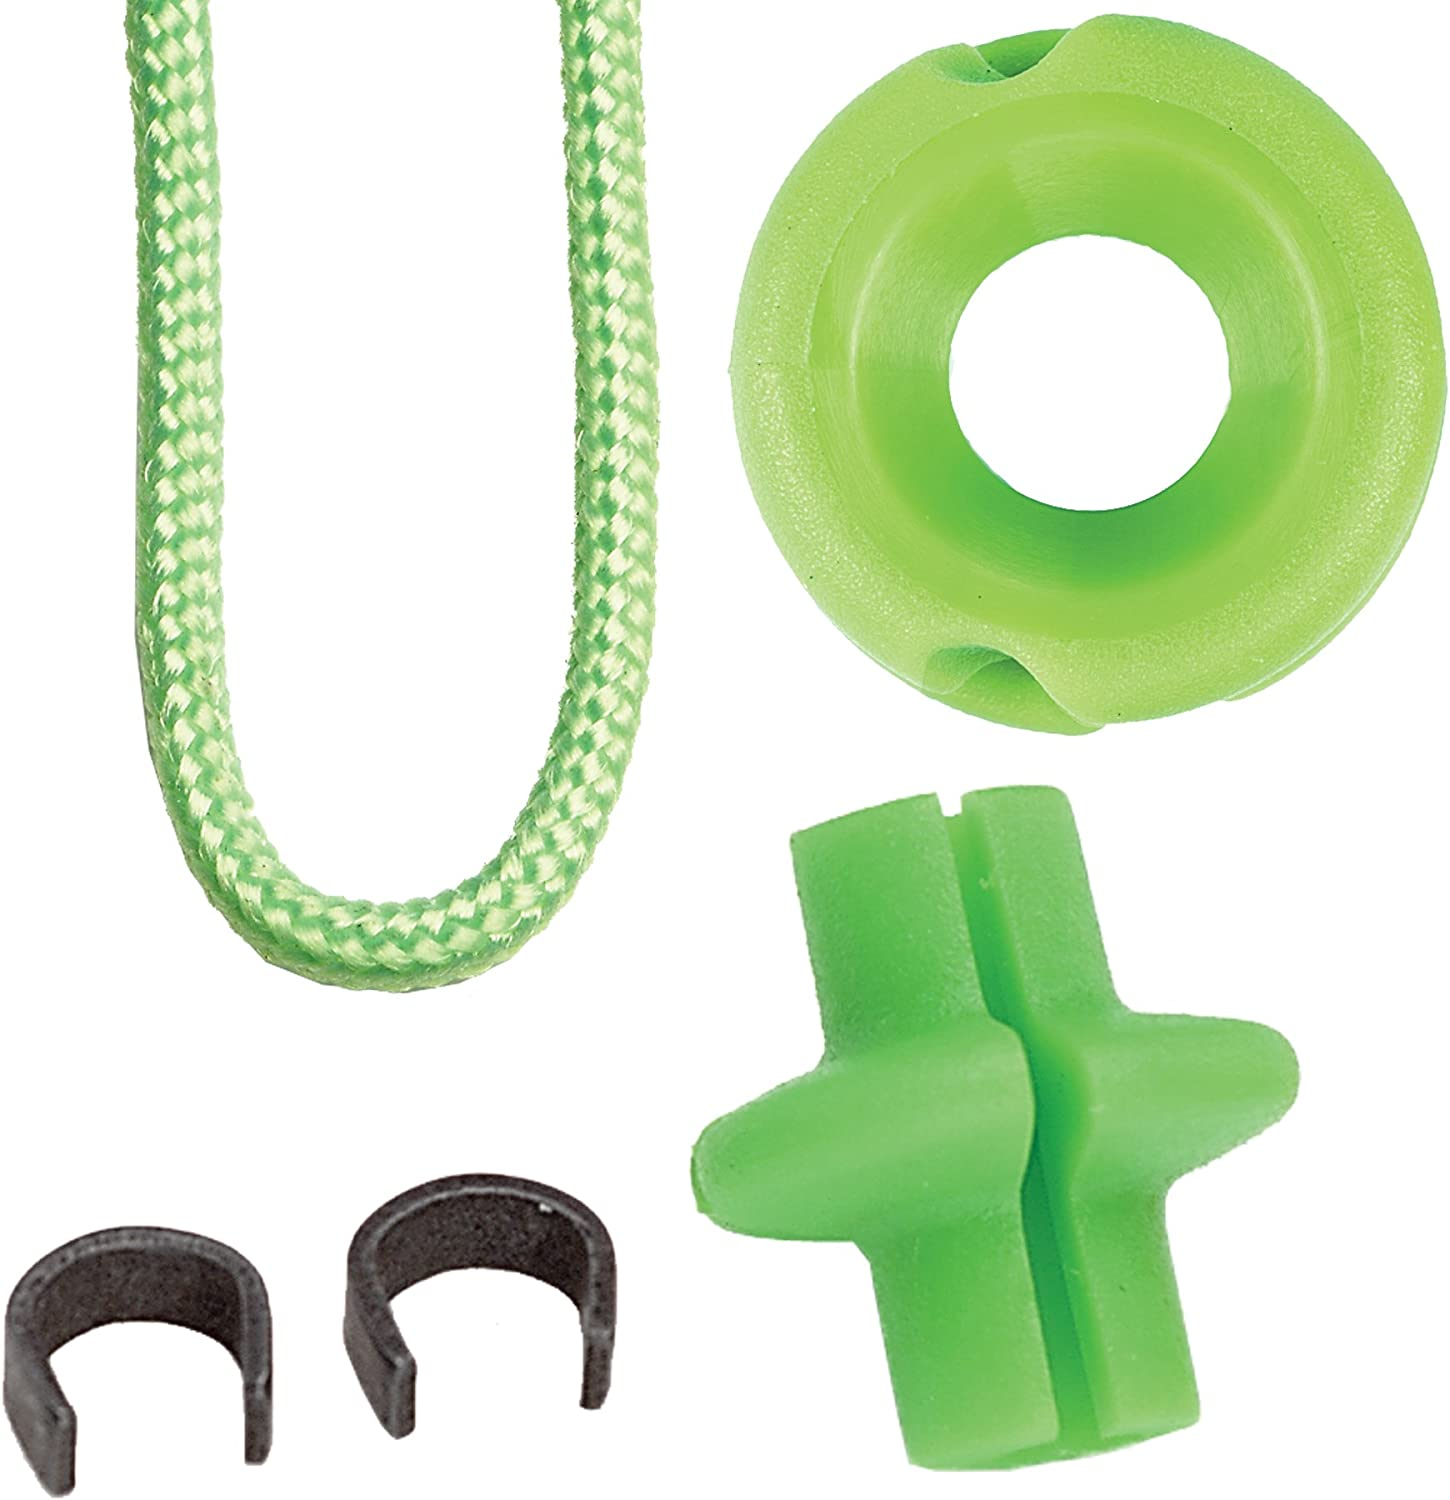 Pine Ridge Archery Hunter's Combo Pack, Lime Green, 3/16-Inch